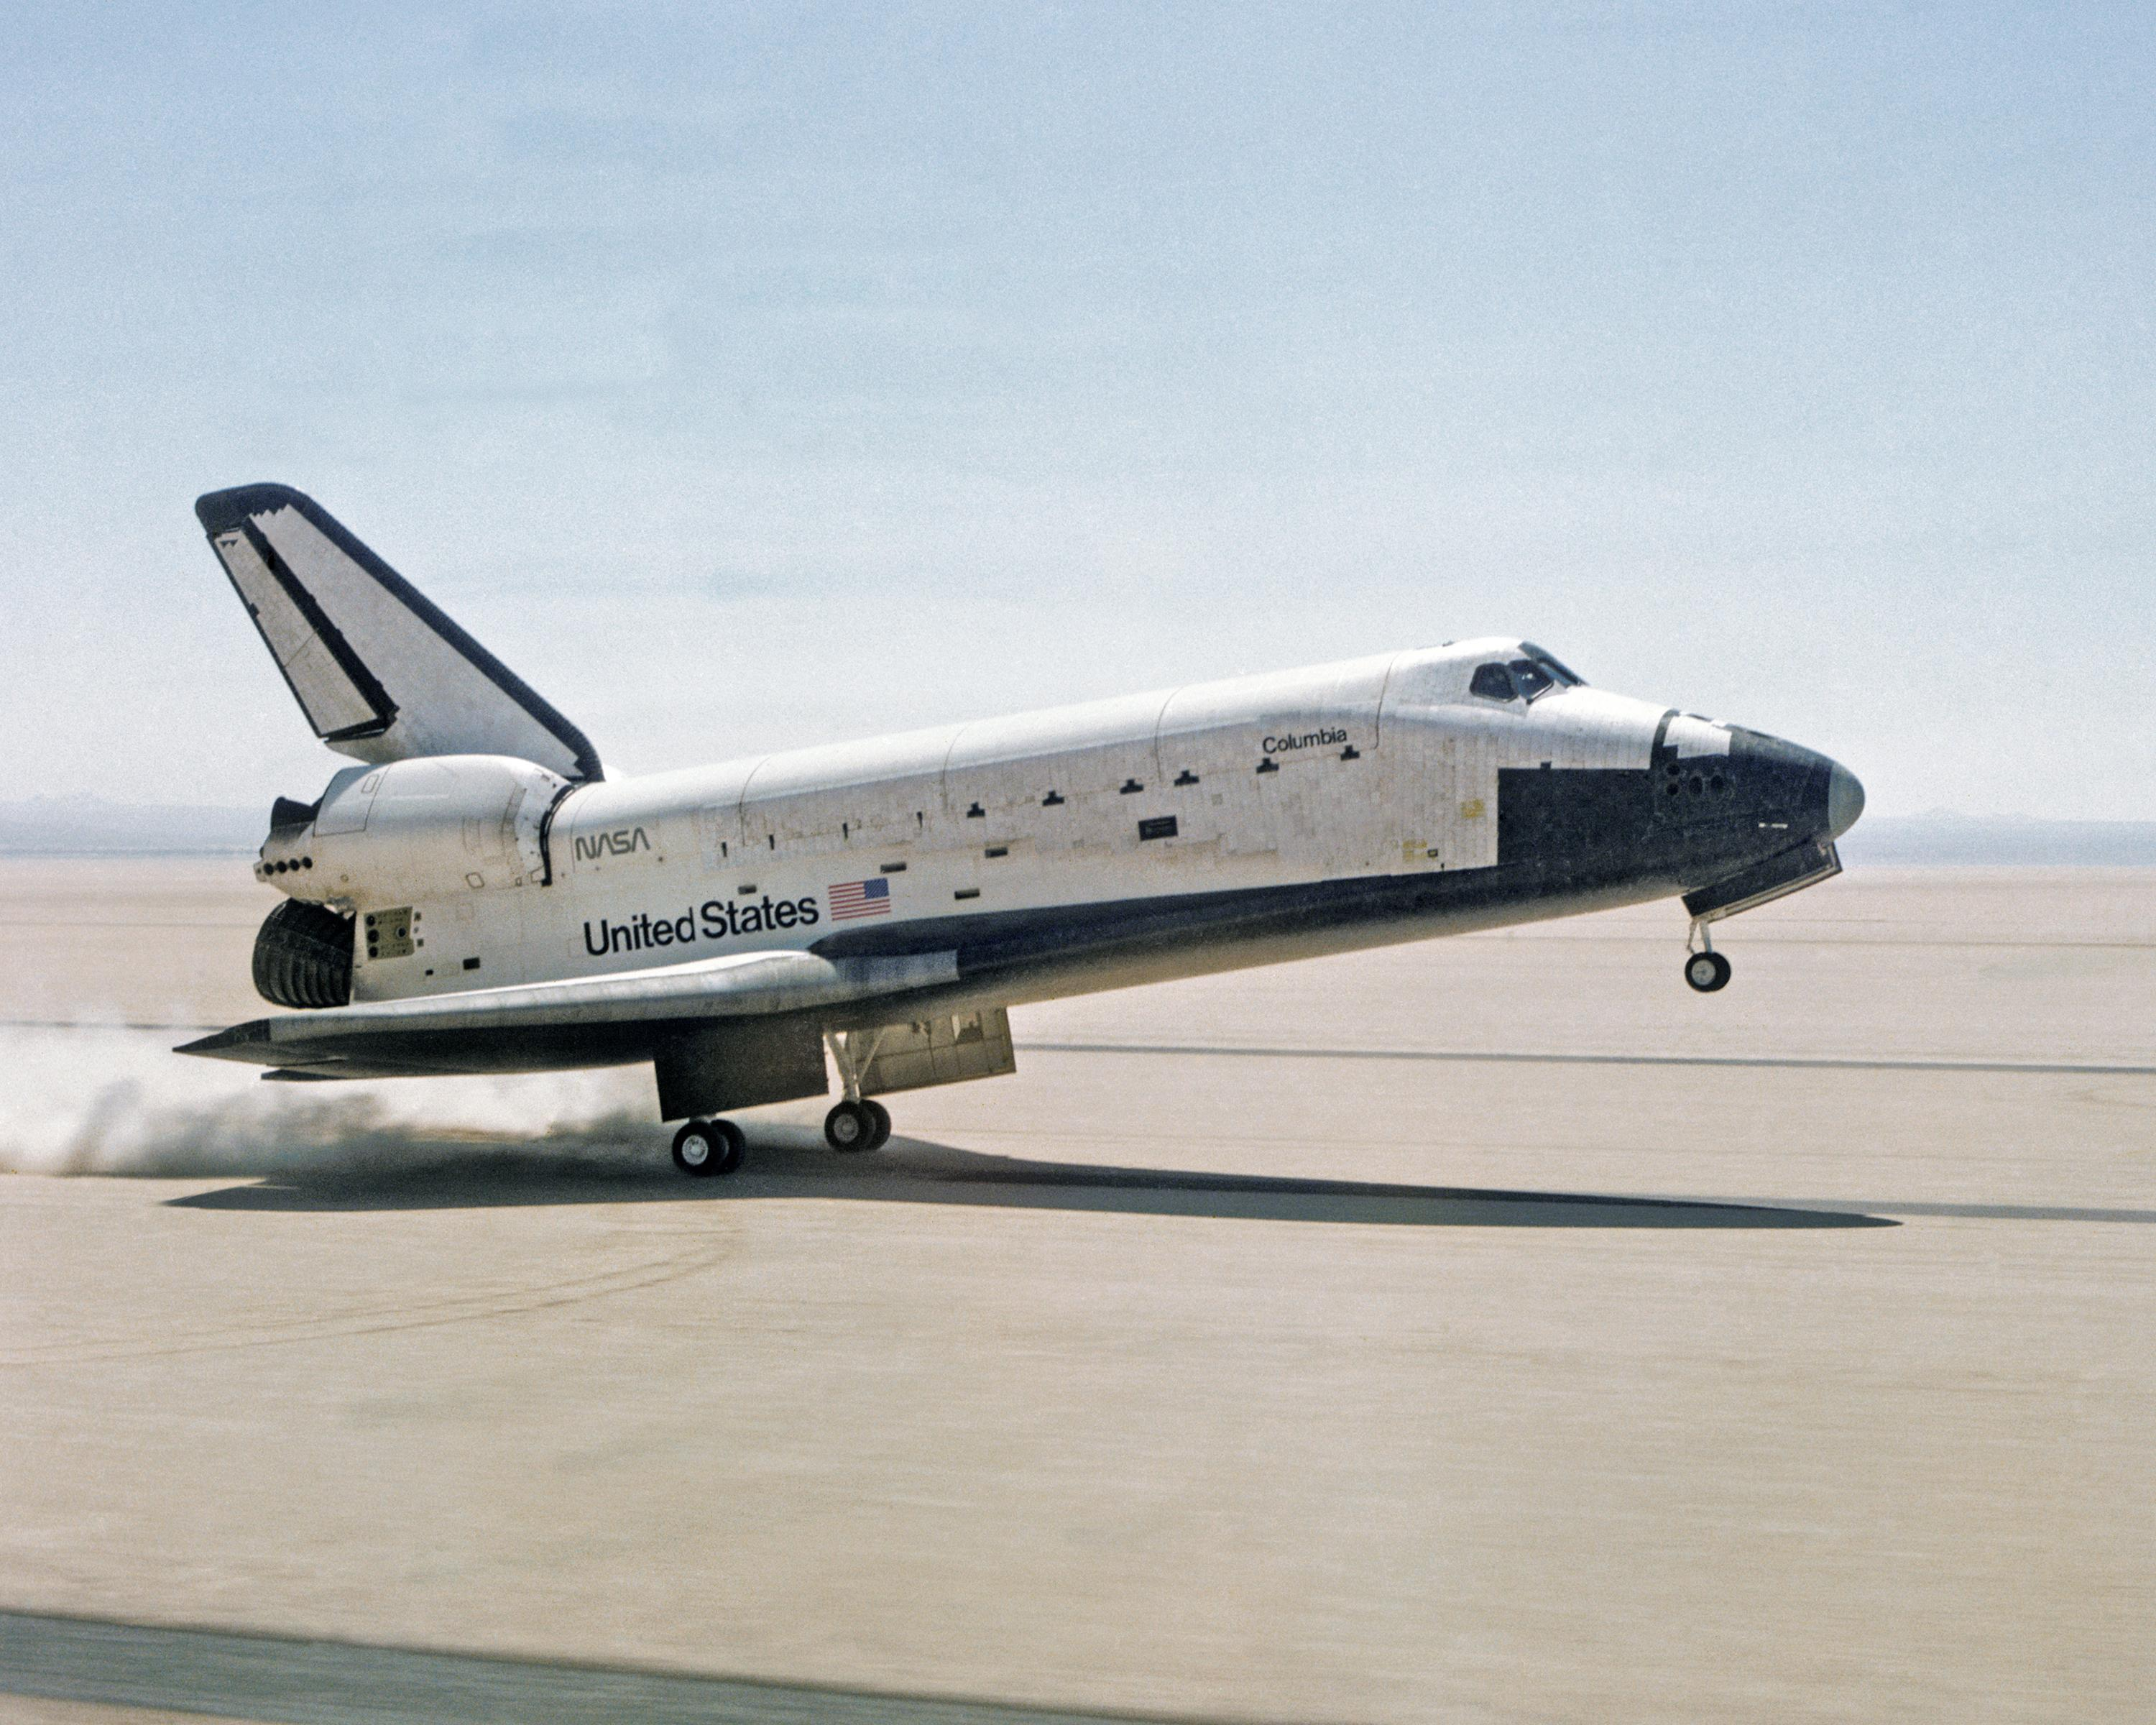 space shuttle runway - photo #22